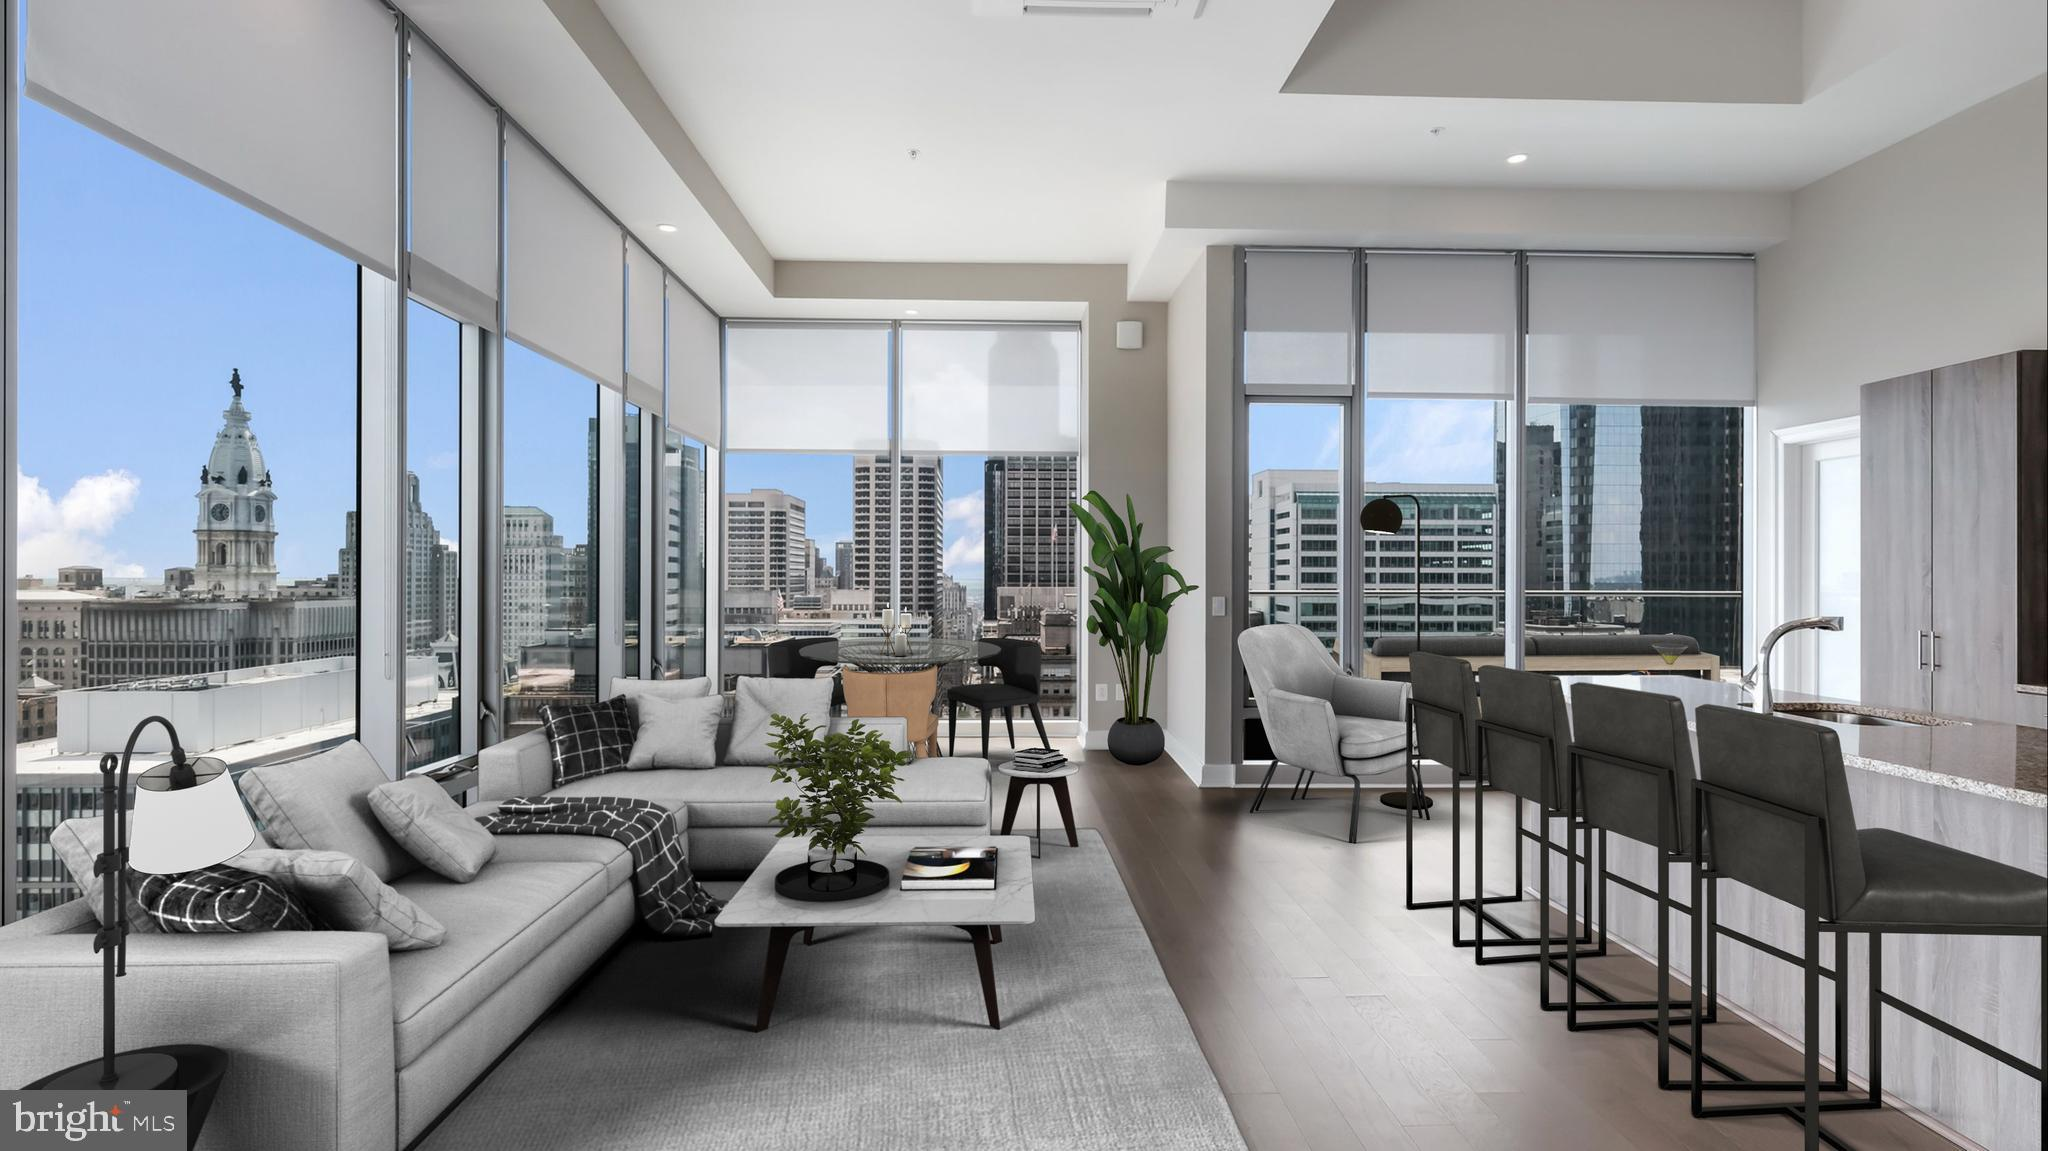 LIMITED TIME SPECIAL: RECEIVE ONE MONTH'S FREE RENT ON A 13 MONTH LEASE , A $1000 MOVE IN CREDIT, WAIVED APPLICATION FEE, AND WAIVED AMENITY FEE, OR 2 MONTH'S FREE RENT ON AN 18 MONTH LEASE!! PENTHOUSE 21!!! You are at the top of it ALL!!! Your CENTER CITY skyline and ART MUSEUM VIEWS, are OUTRAGEOUS!!! This must see 2 BEDROOM residence at FRANKLIN TOWER, offers THE BEST, in high rise living. All open living and DINING area. Kitchen with breakfast bar, stainless steel appliances, and custom cabinetry. Gracious bedroom, and fantastic bath. This sun splashed residence is EXTRAORDINARY, and this new APARTMENT building community boasts, GARAGE PARKING, and one of the following on EVERY FLOOR: gyms, community rooms, business centers, screening rooms, and SPIN ROOMS. The ROOF DECK is the LARGEST in PHILADELPHIA and has 360 degree AMAZING VIEWS!!!!!!!!! This is a MUST SEE Life style property, just minutes from fantastic dining, entertainment, I95, I676, Kelly Drive, The Barnes, and Whole foods Market.  Photo's are of model unit.